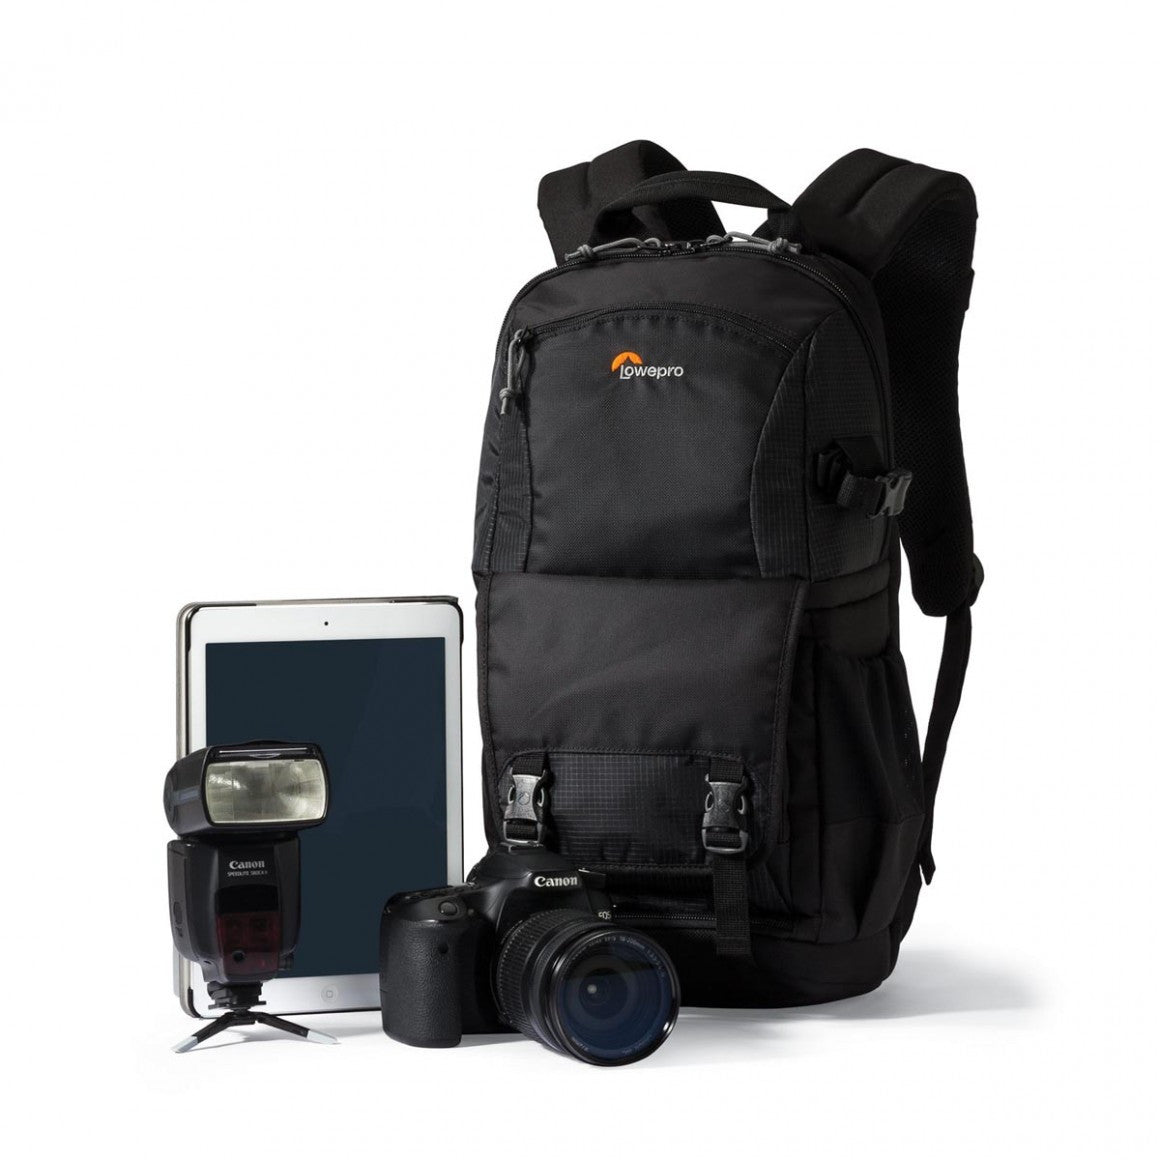 LowePro Fastpack BP 150 AW II (Black) LP36870 - Photo-Video - Lowepro - Helix Camera